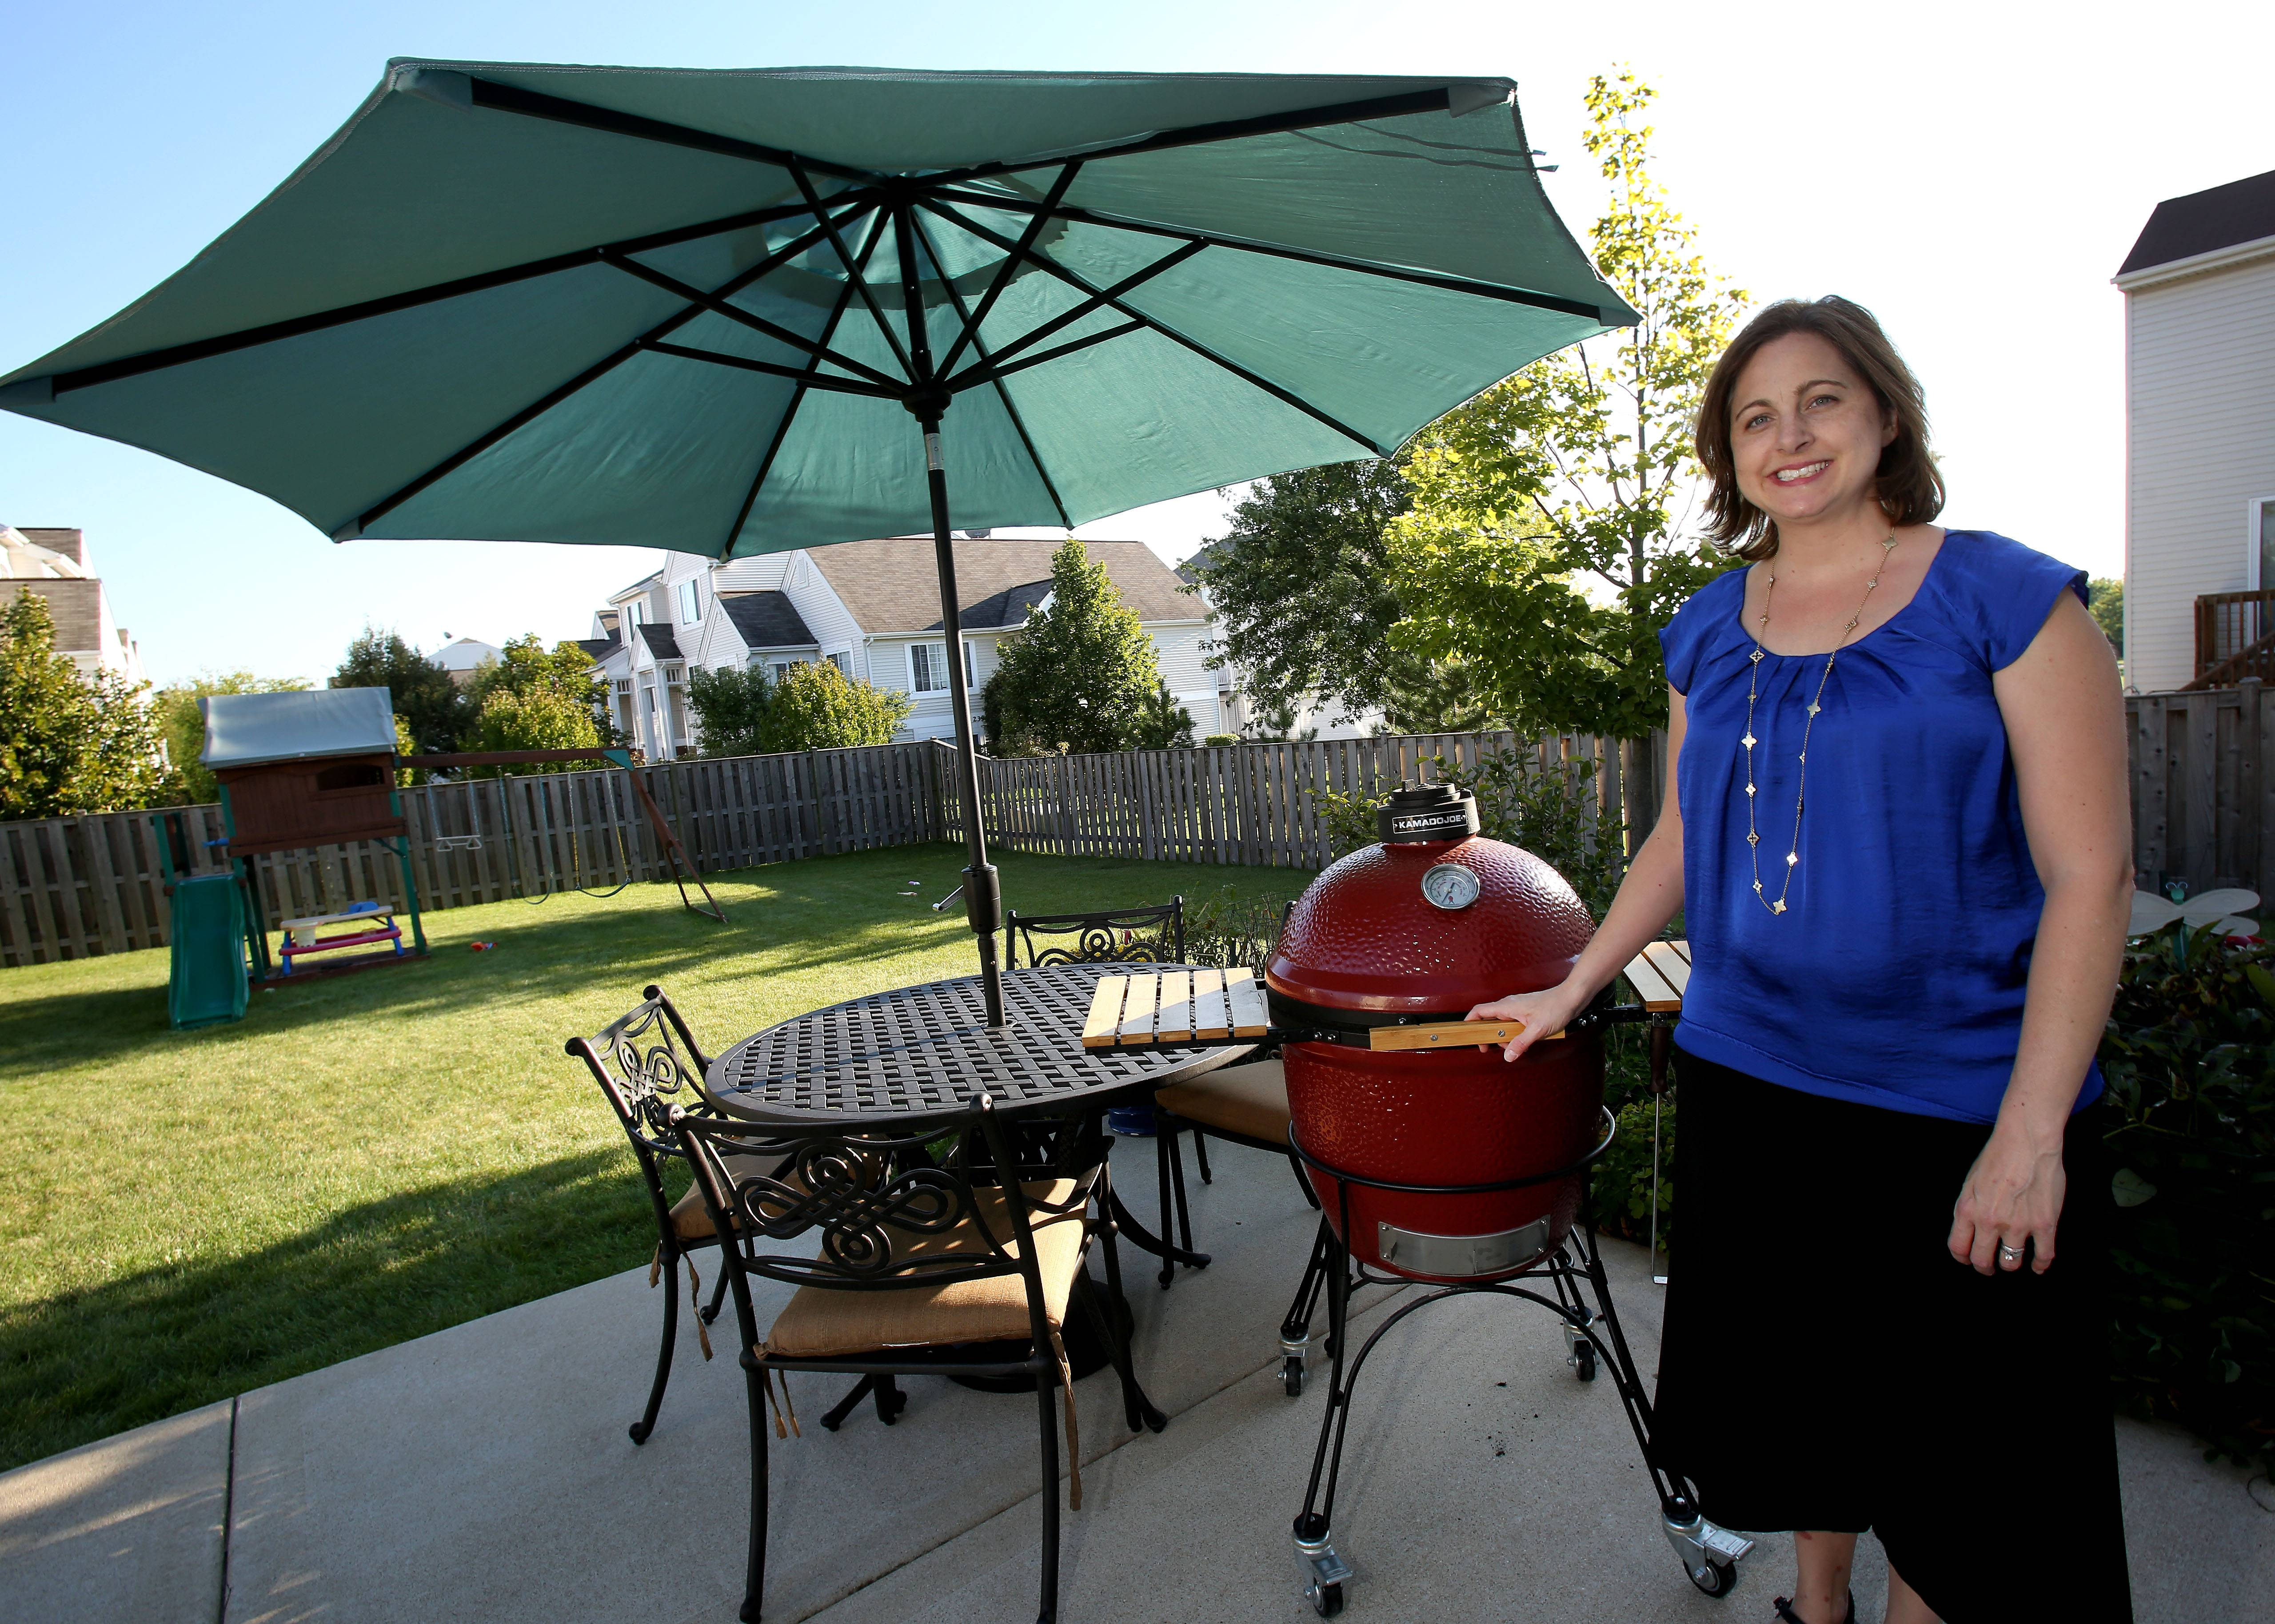 Amy Dawes of Aurora enjoys entertaining with her new patio furniture from Viking Patio and Ski in Barrington and Kamado Joe slow cooker courtesy of Northwest Metalcraft in Arlington Heights.